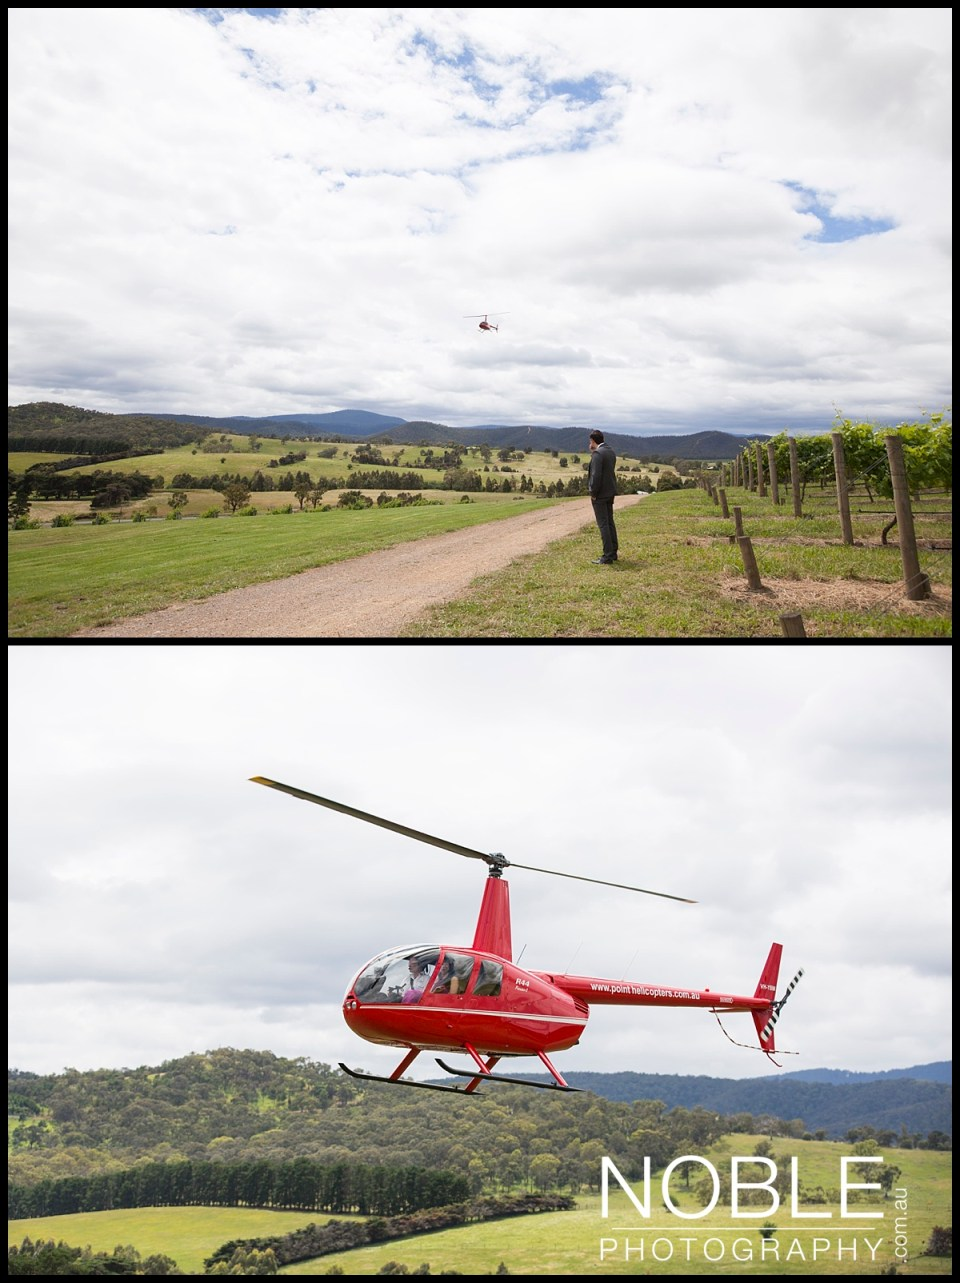 1024-proposal-helicopter.JPG